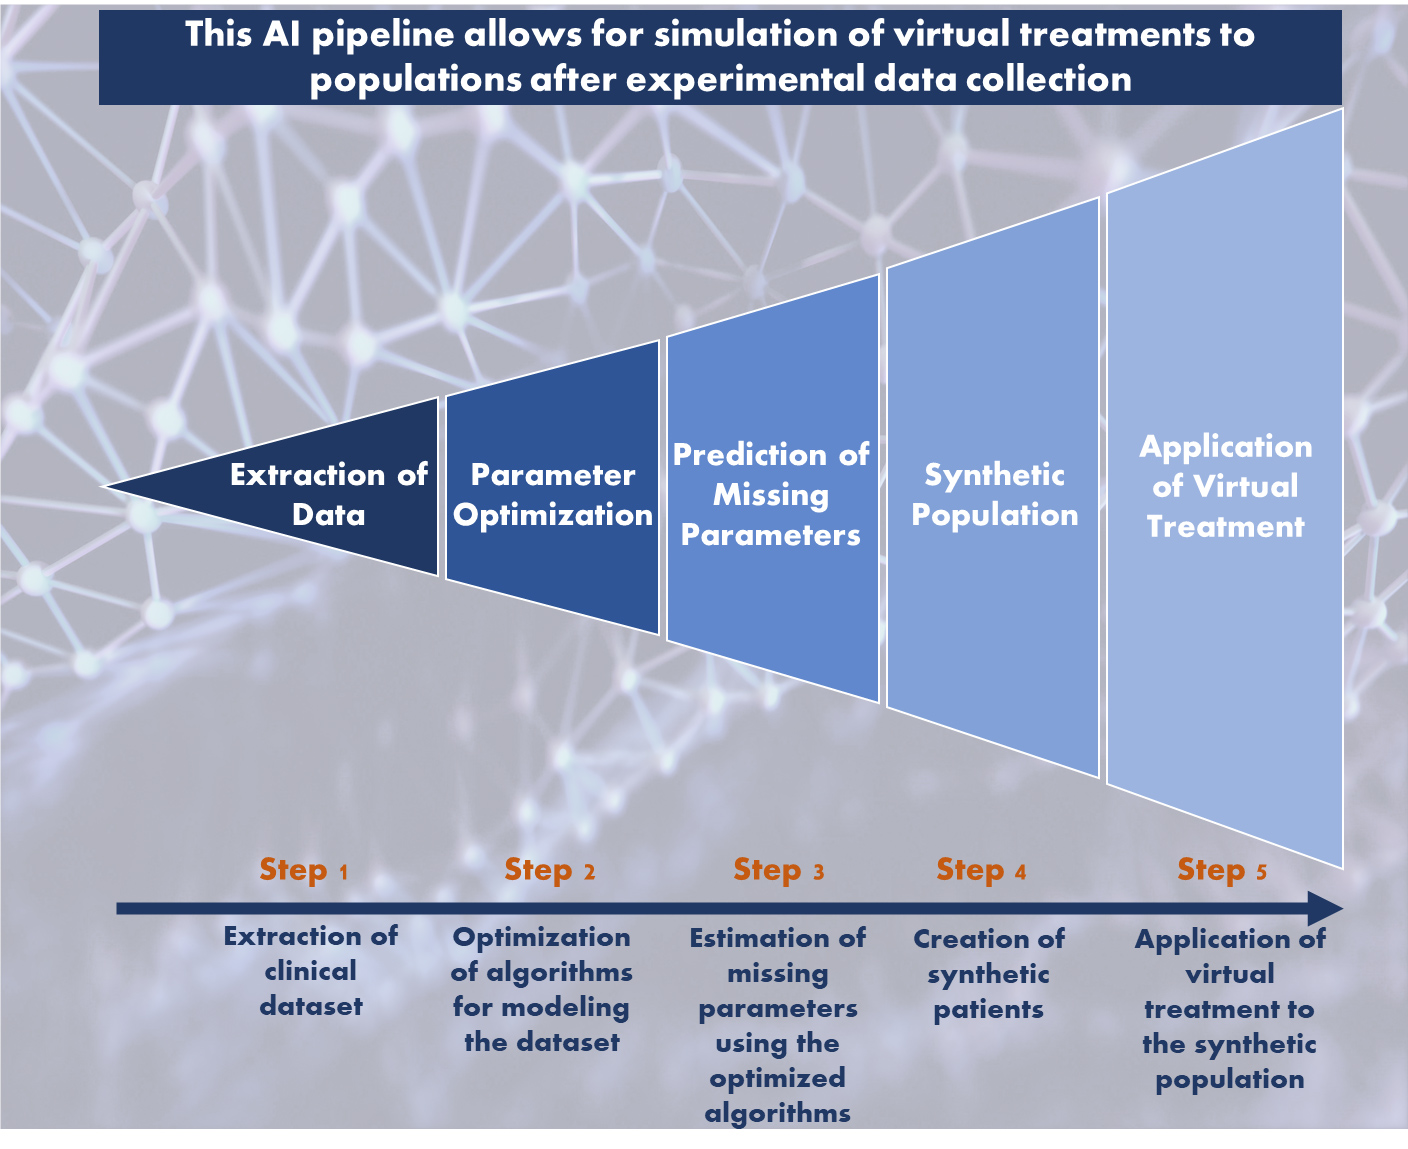 AI pipeline allows for simulation of virtual treatments to populations after experimental data collection